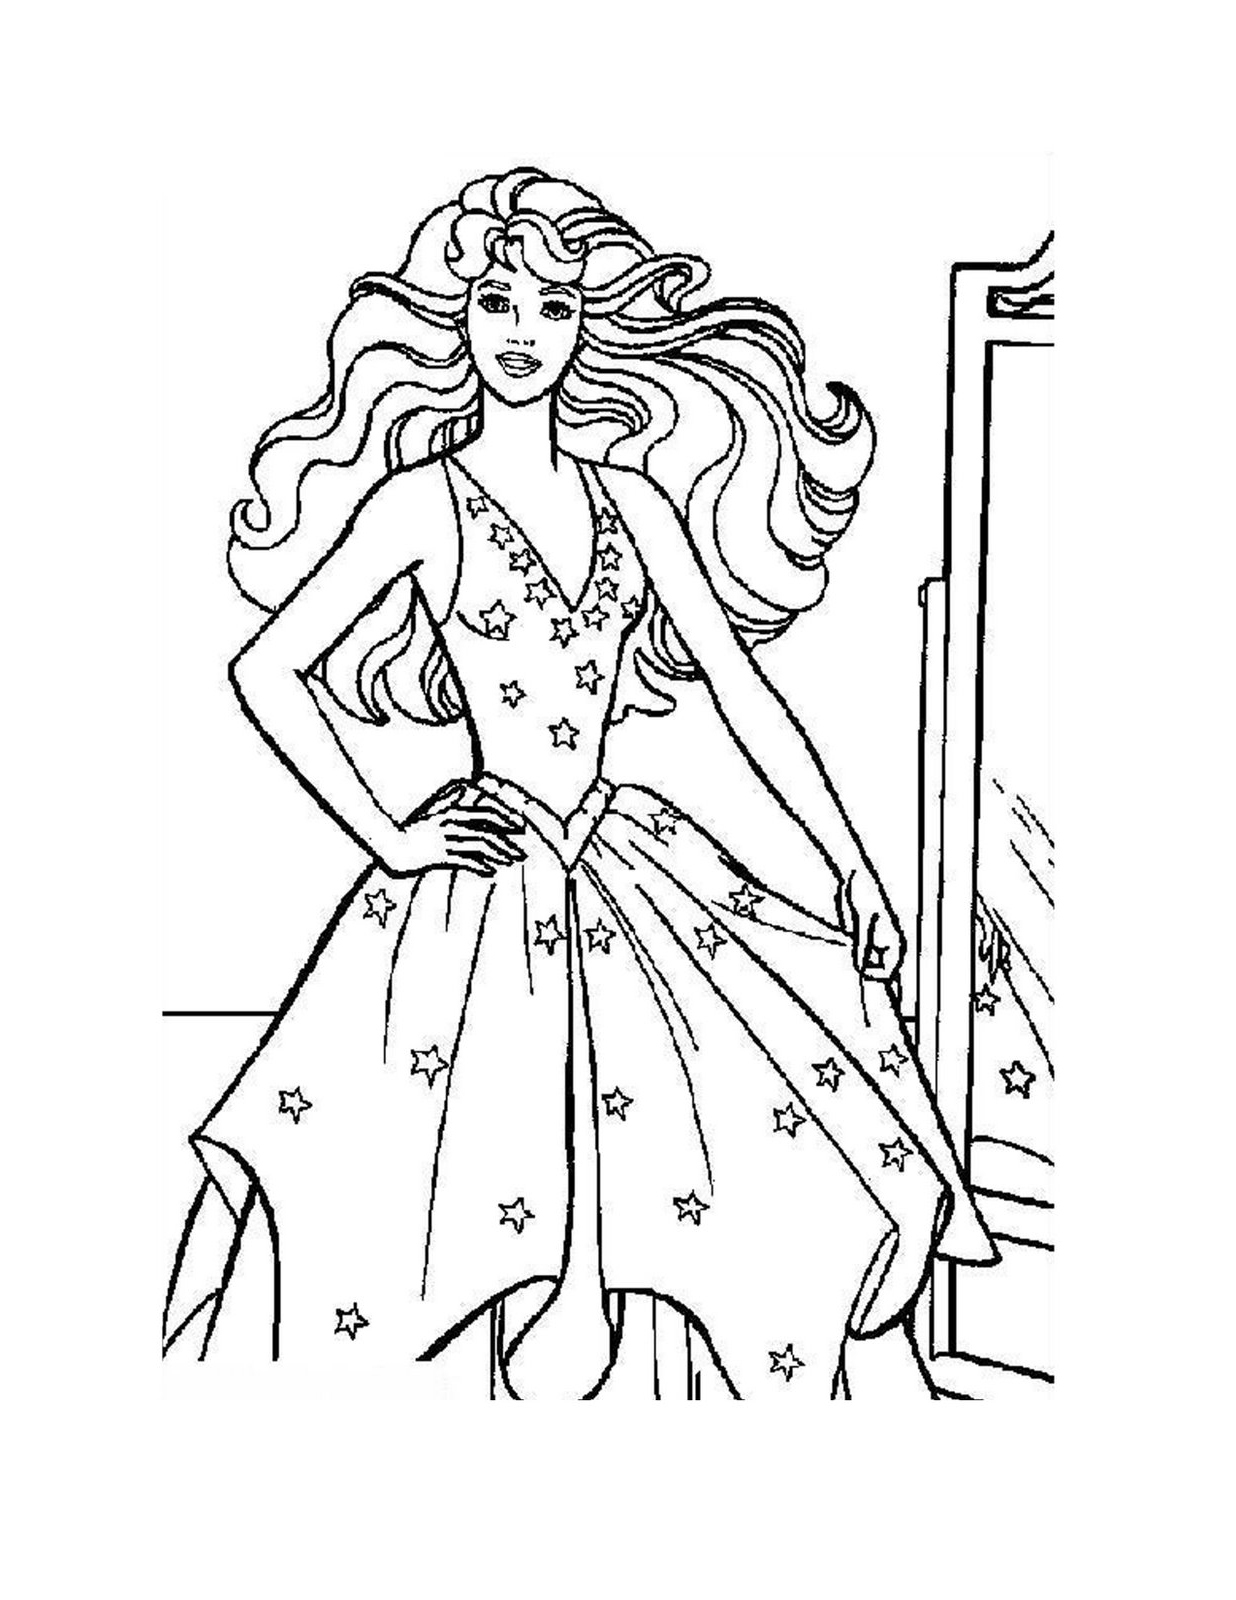 1236x1600 Free Printable Disney Princess Coloring Pages For Kids